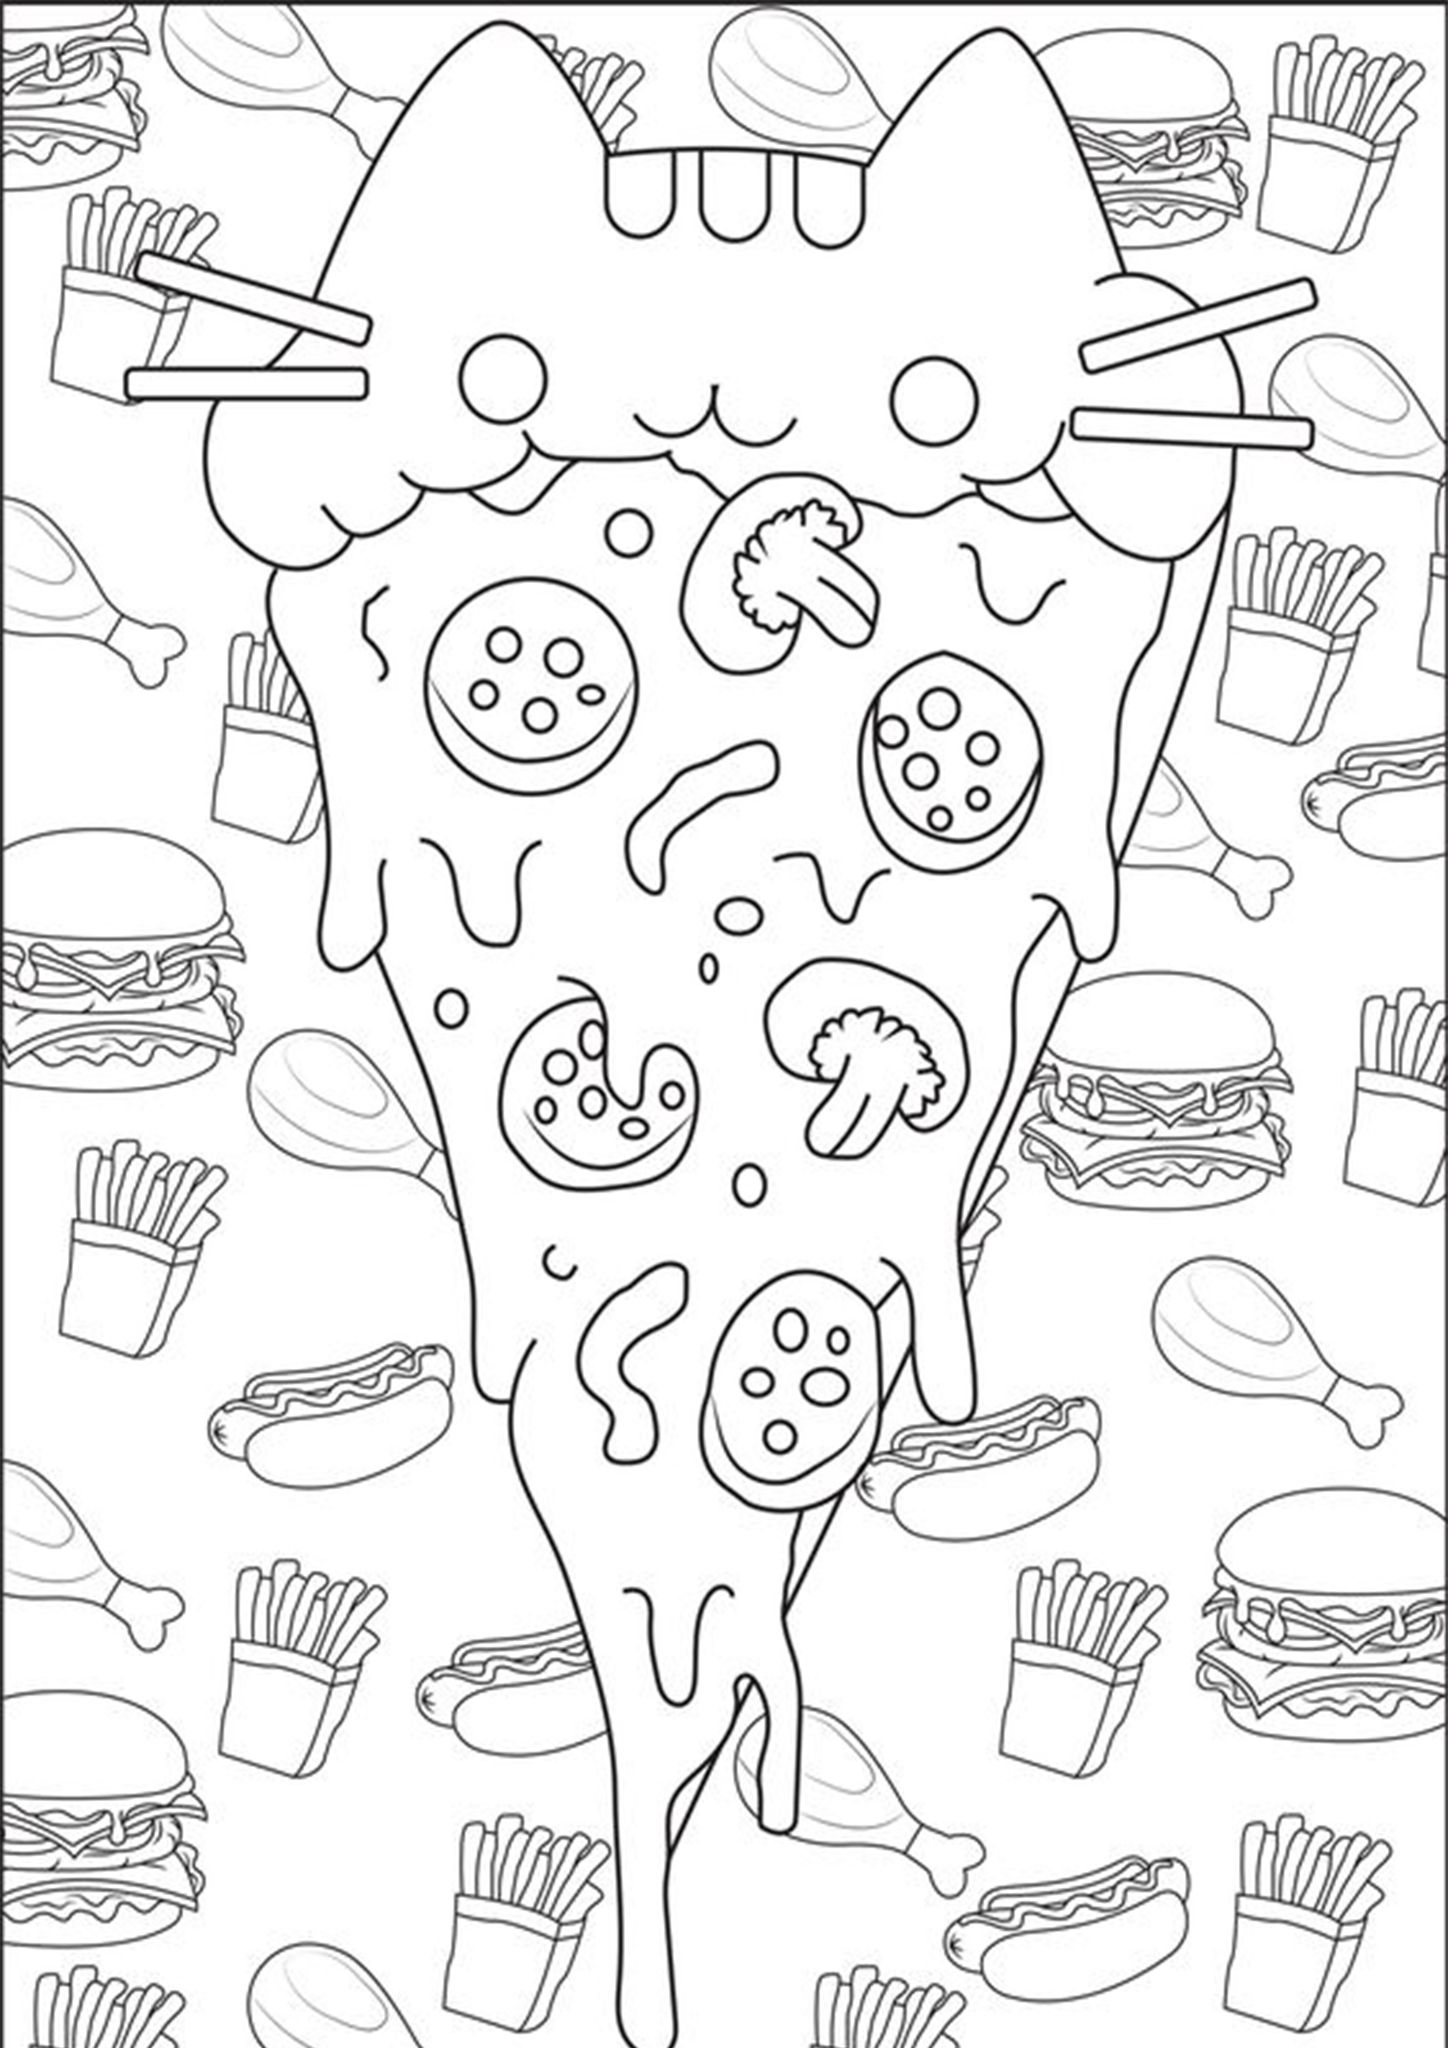 Free Easy To Print Pizza Coloring Pages Pusheen Coloring Pages Cute Coloring Pages Puppy Coloring Pages